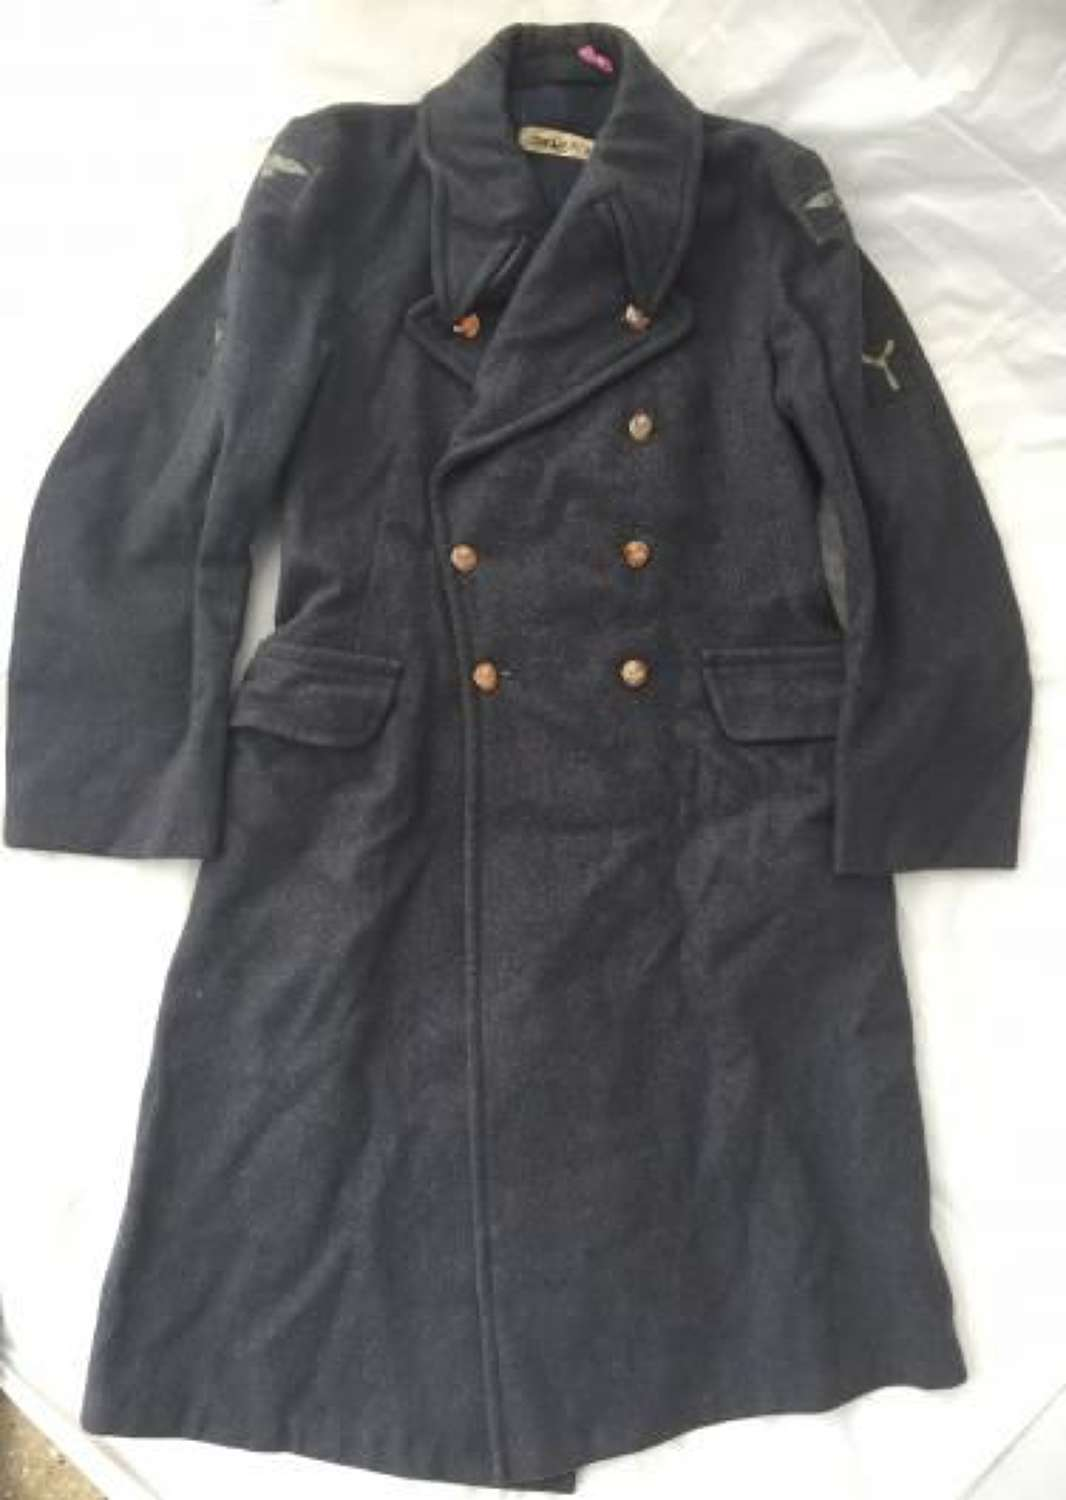 1952 Dated RAF Greatcoat 'Coats Great Other Airman New Pattern'